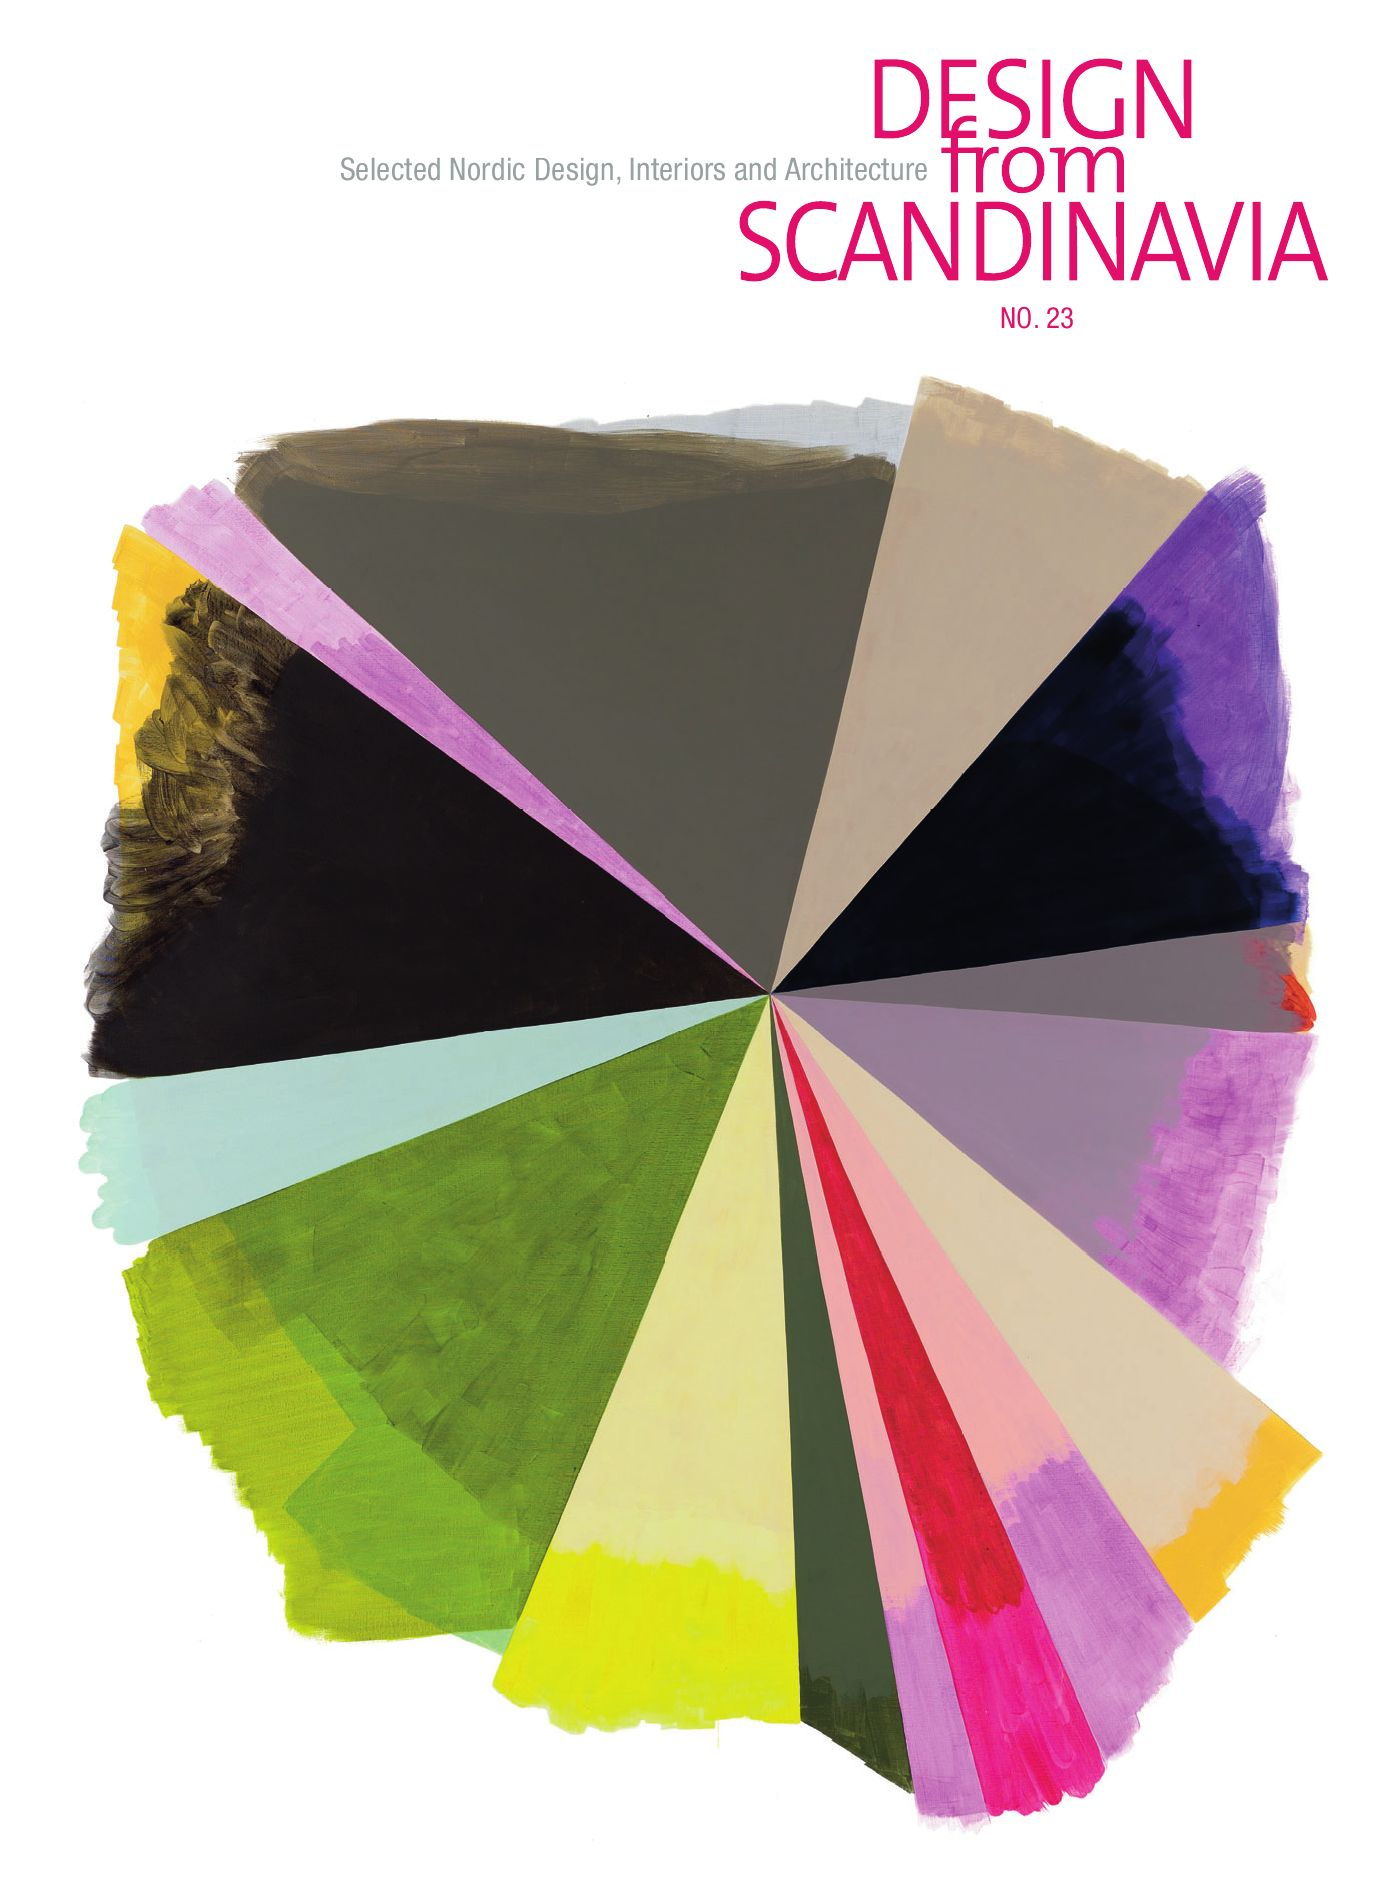 DESIGN from SCANDINAVIA by h g - issuu